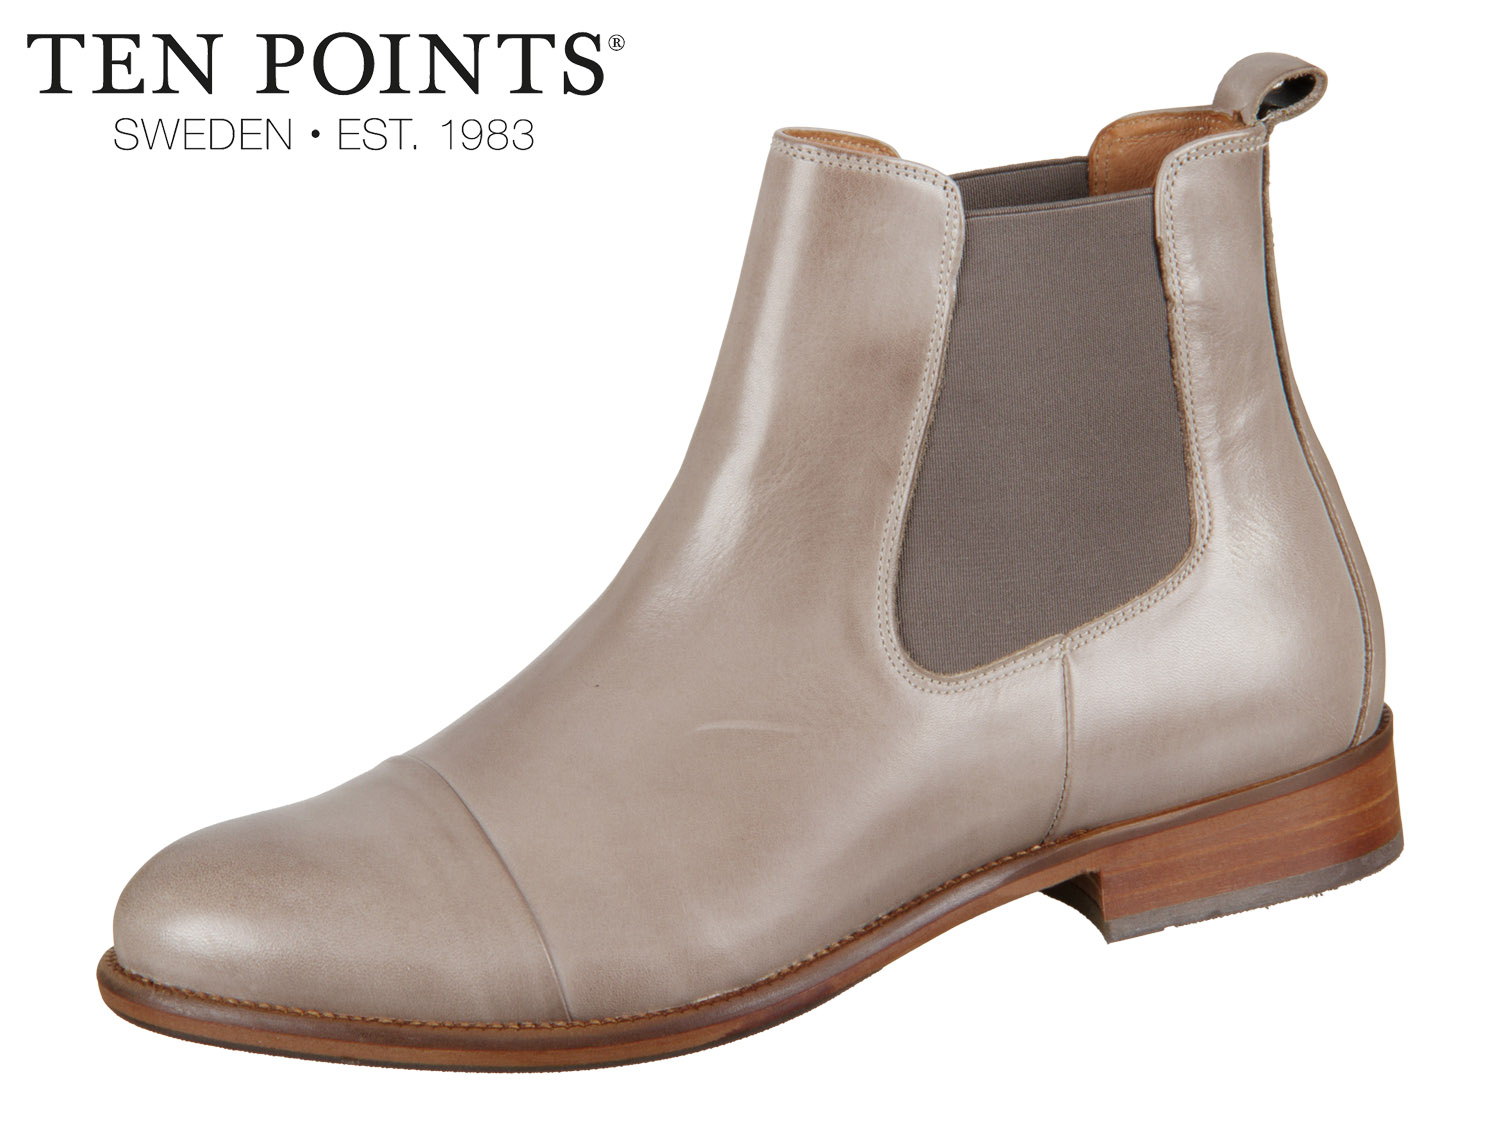 Ten Points Diana 206001 356 taupe Leather